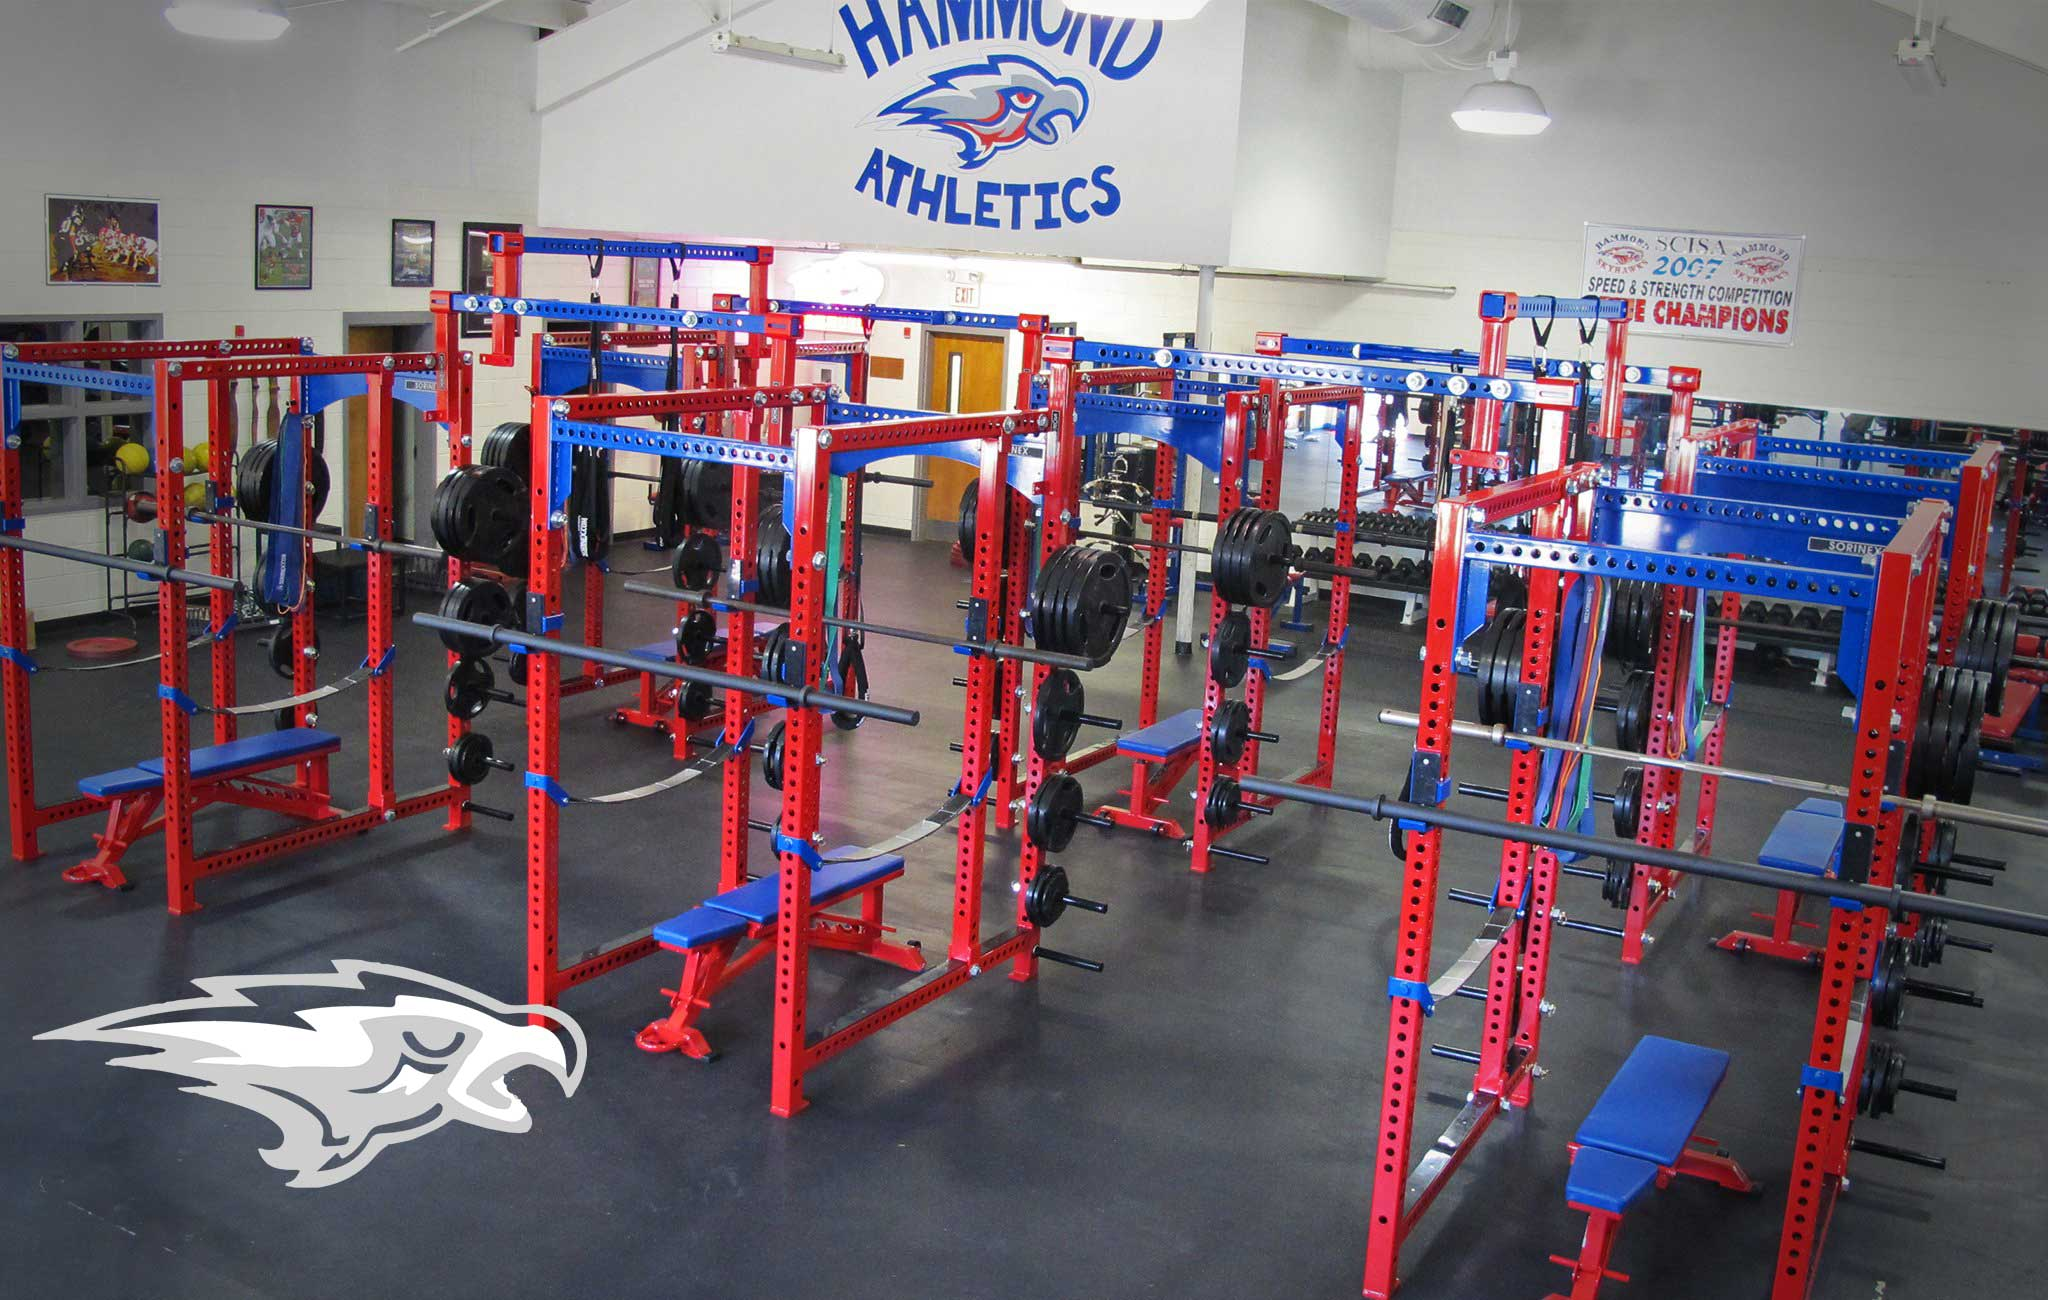 Hammond school Sorinex strength and conditioning facility